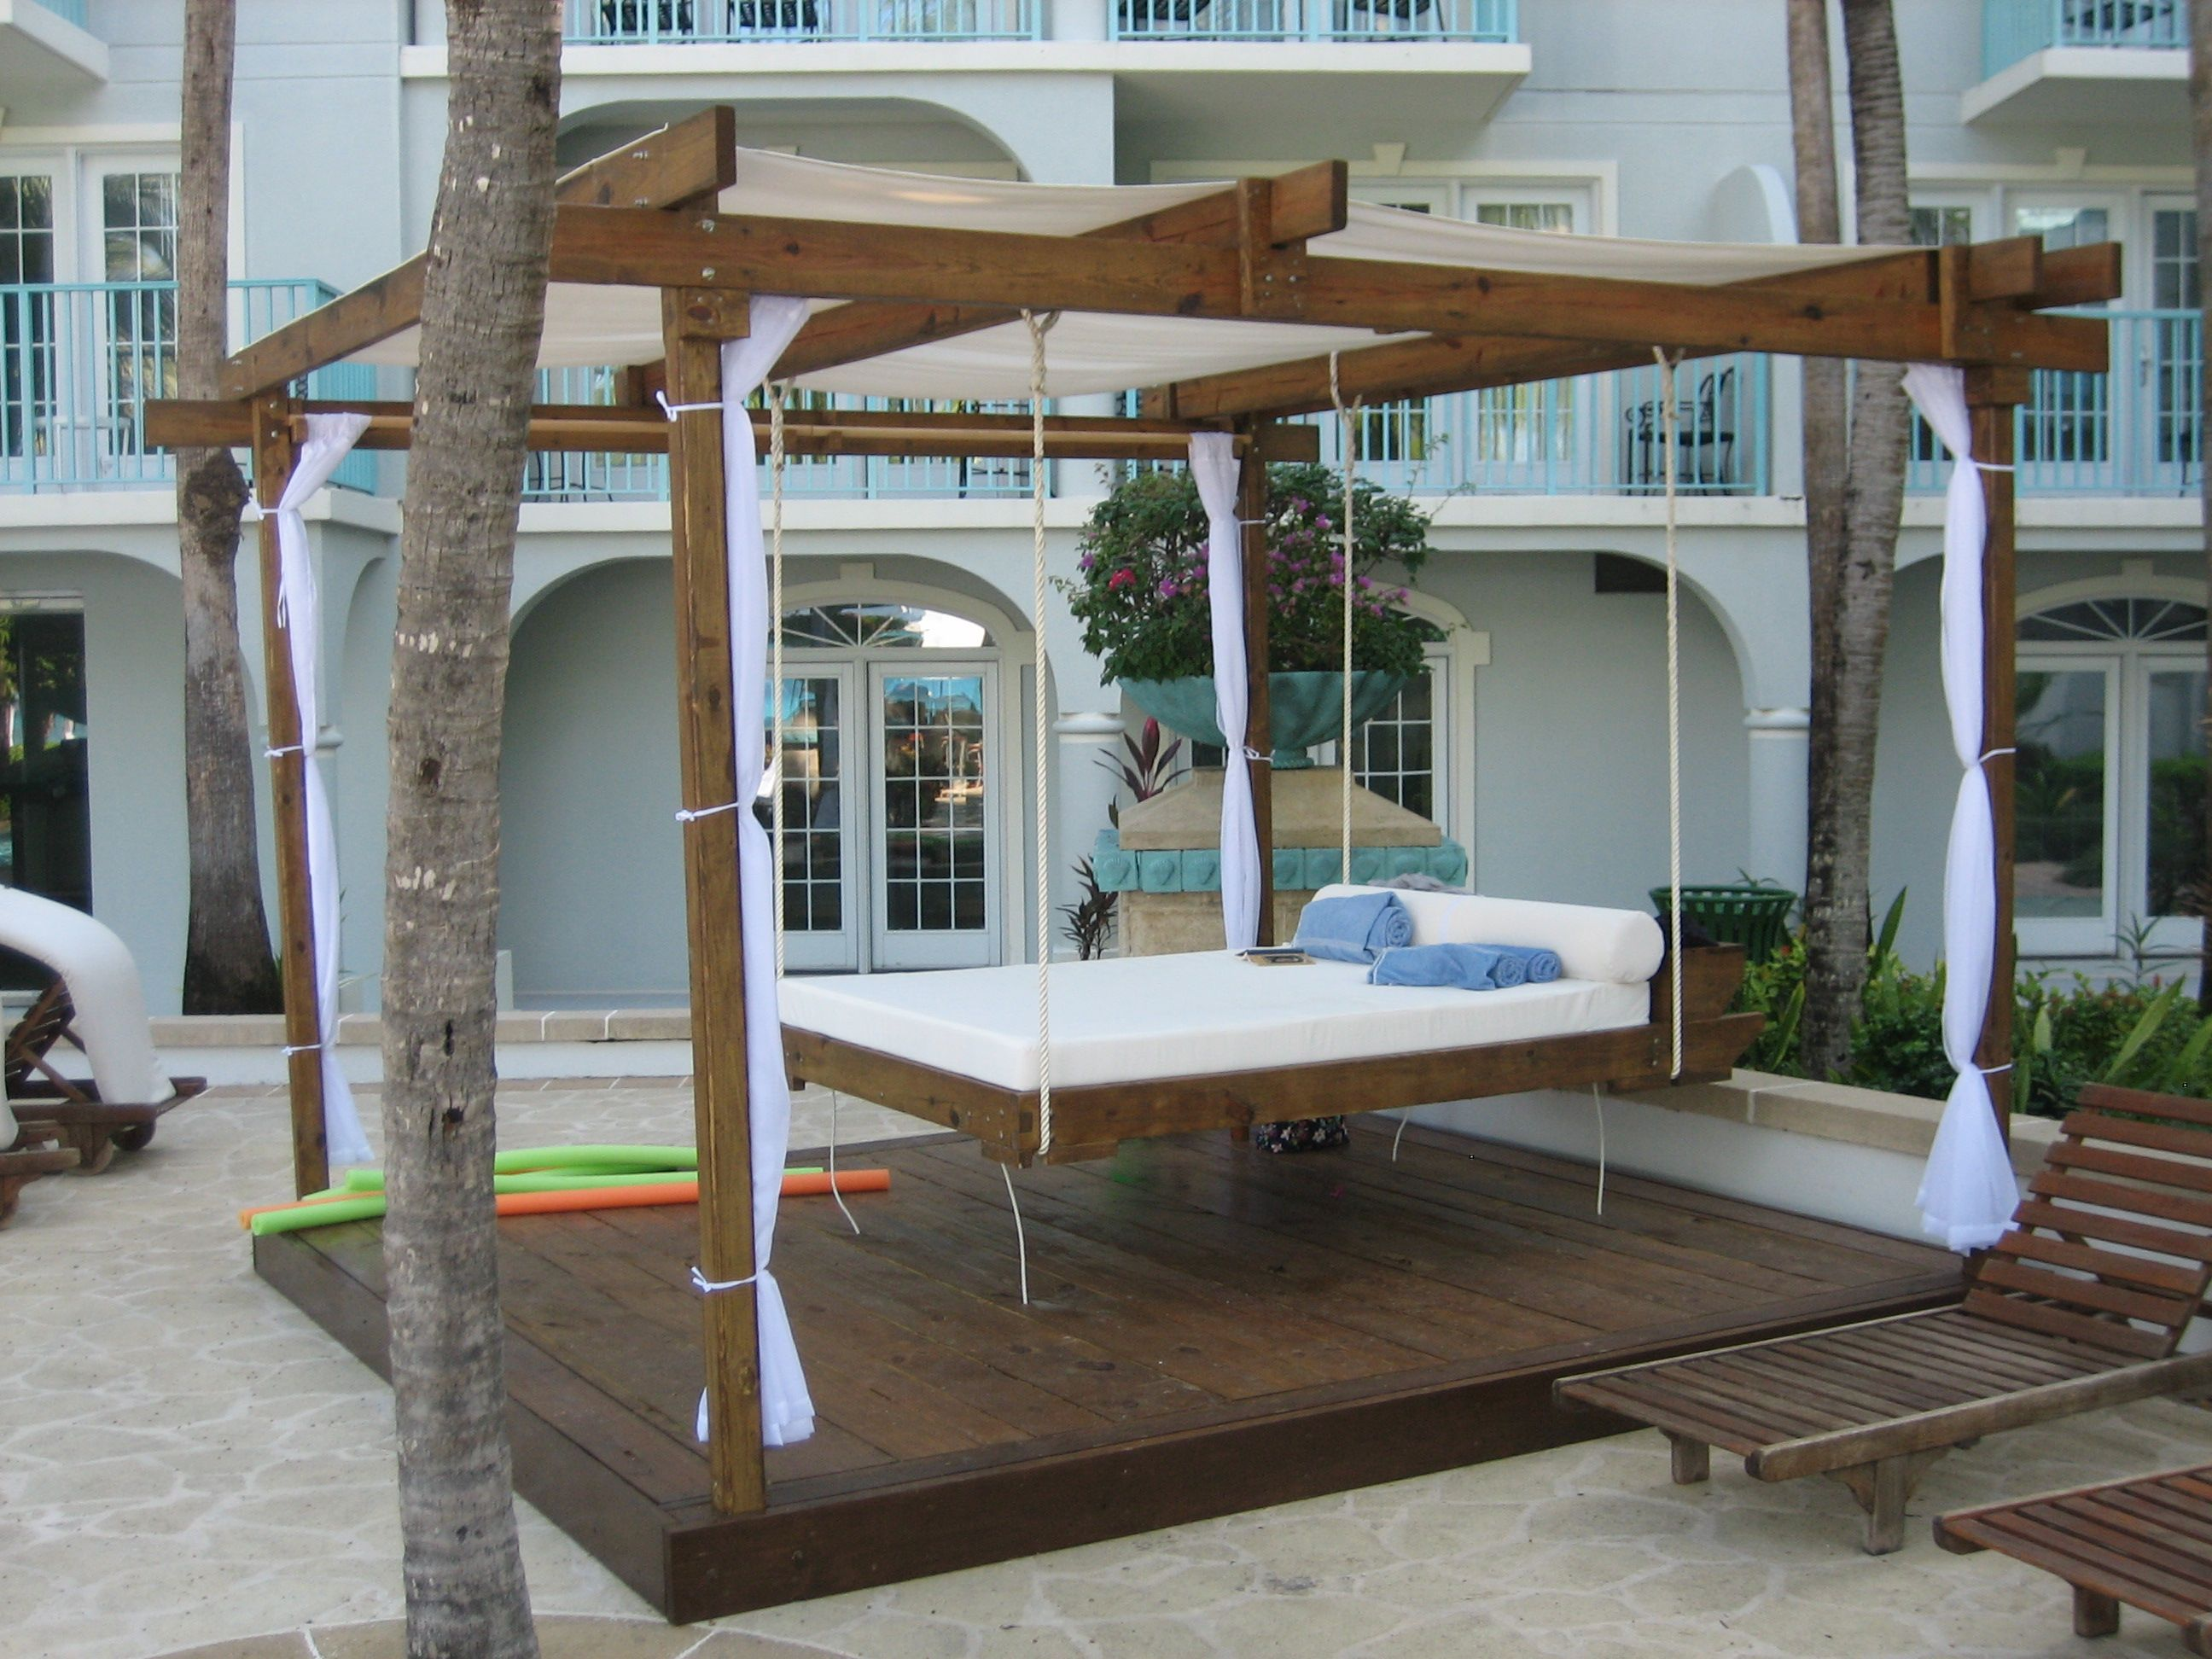 Diy outdoor hanging bed - Very Popular Teak Outdoor Hanging Beds Under Pergola Roof On Wooden Deck Backyard Furnishing Ideas